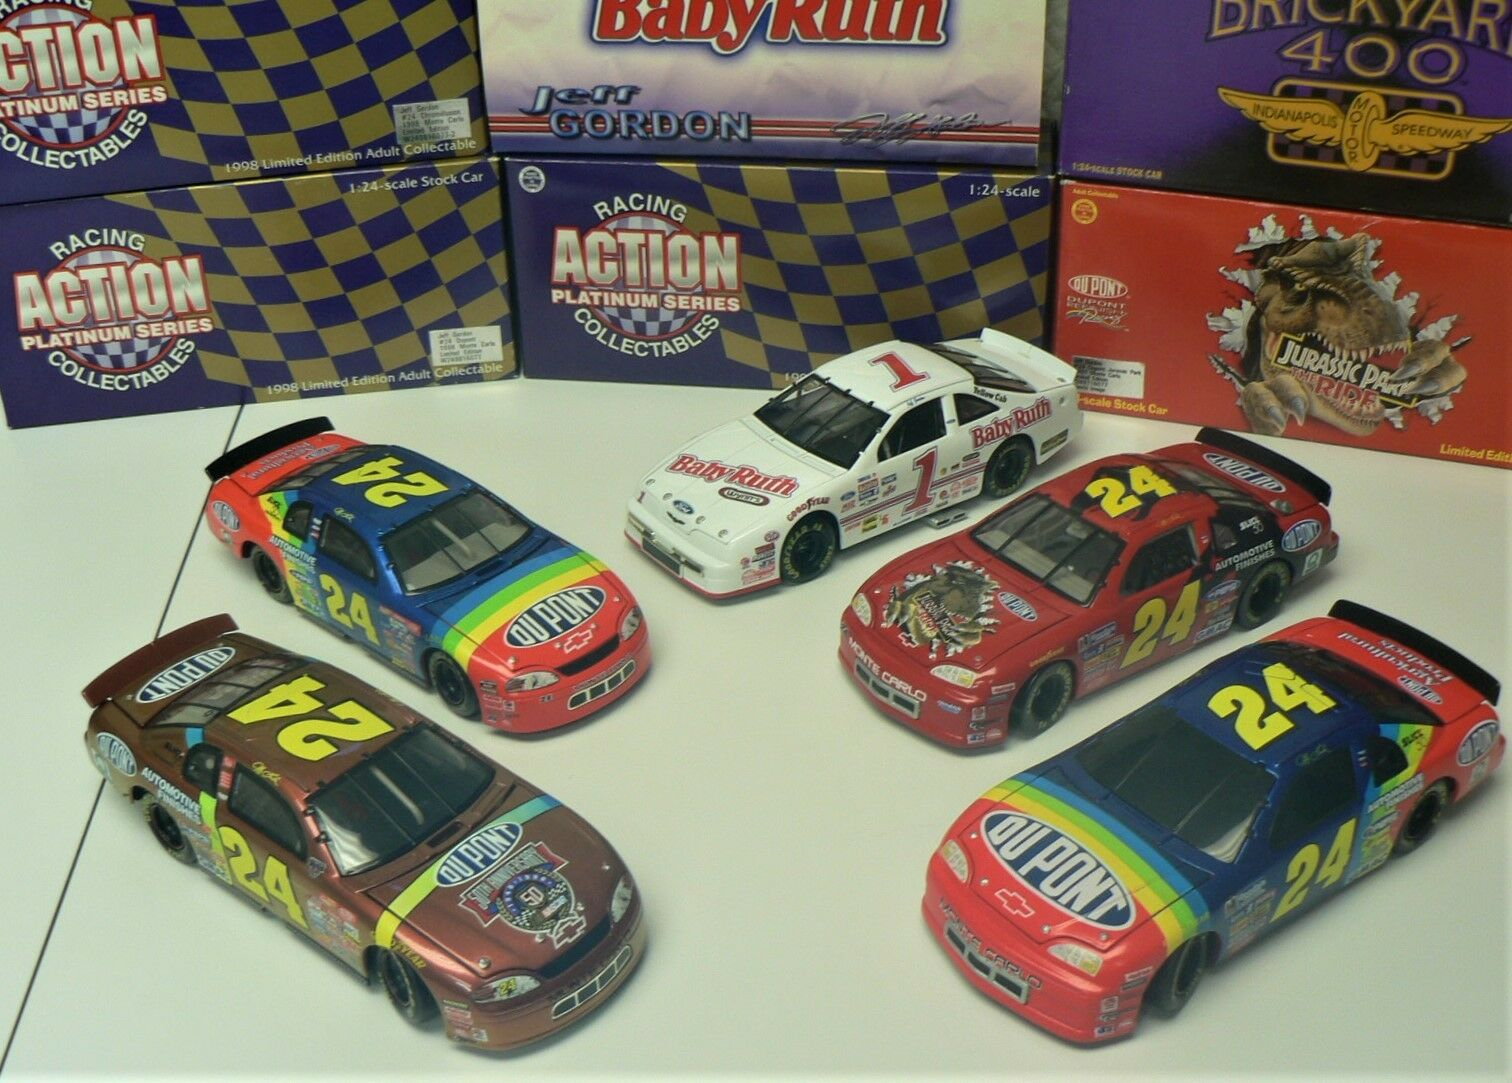 NASCAR - JEFF GORDON - Lot of 5 (1997/1998) Collectable Cars by ACTION Racing